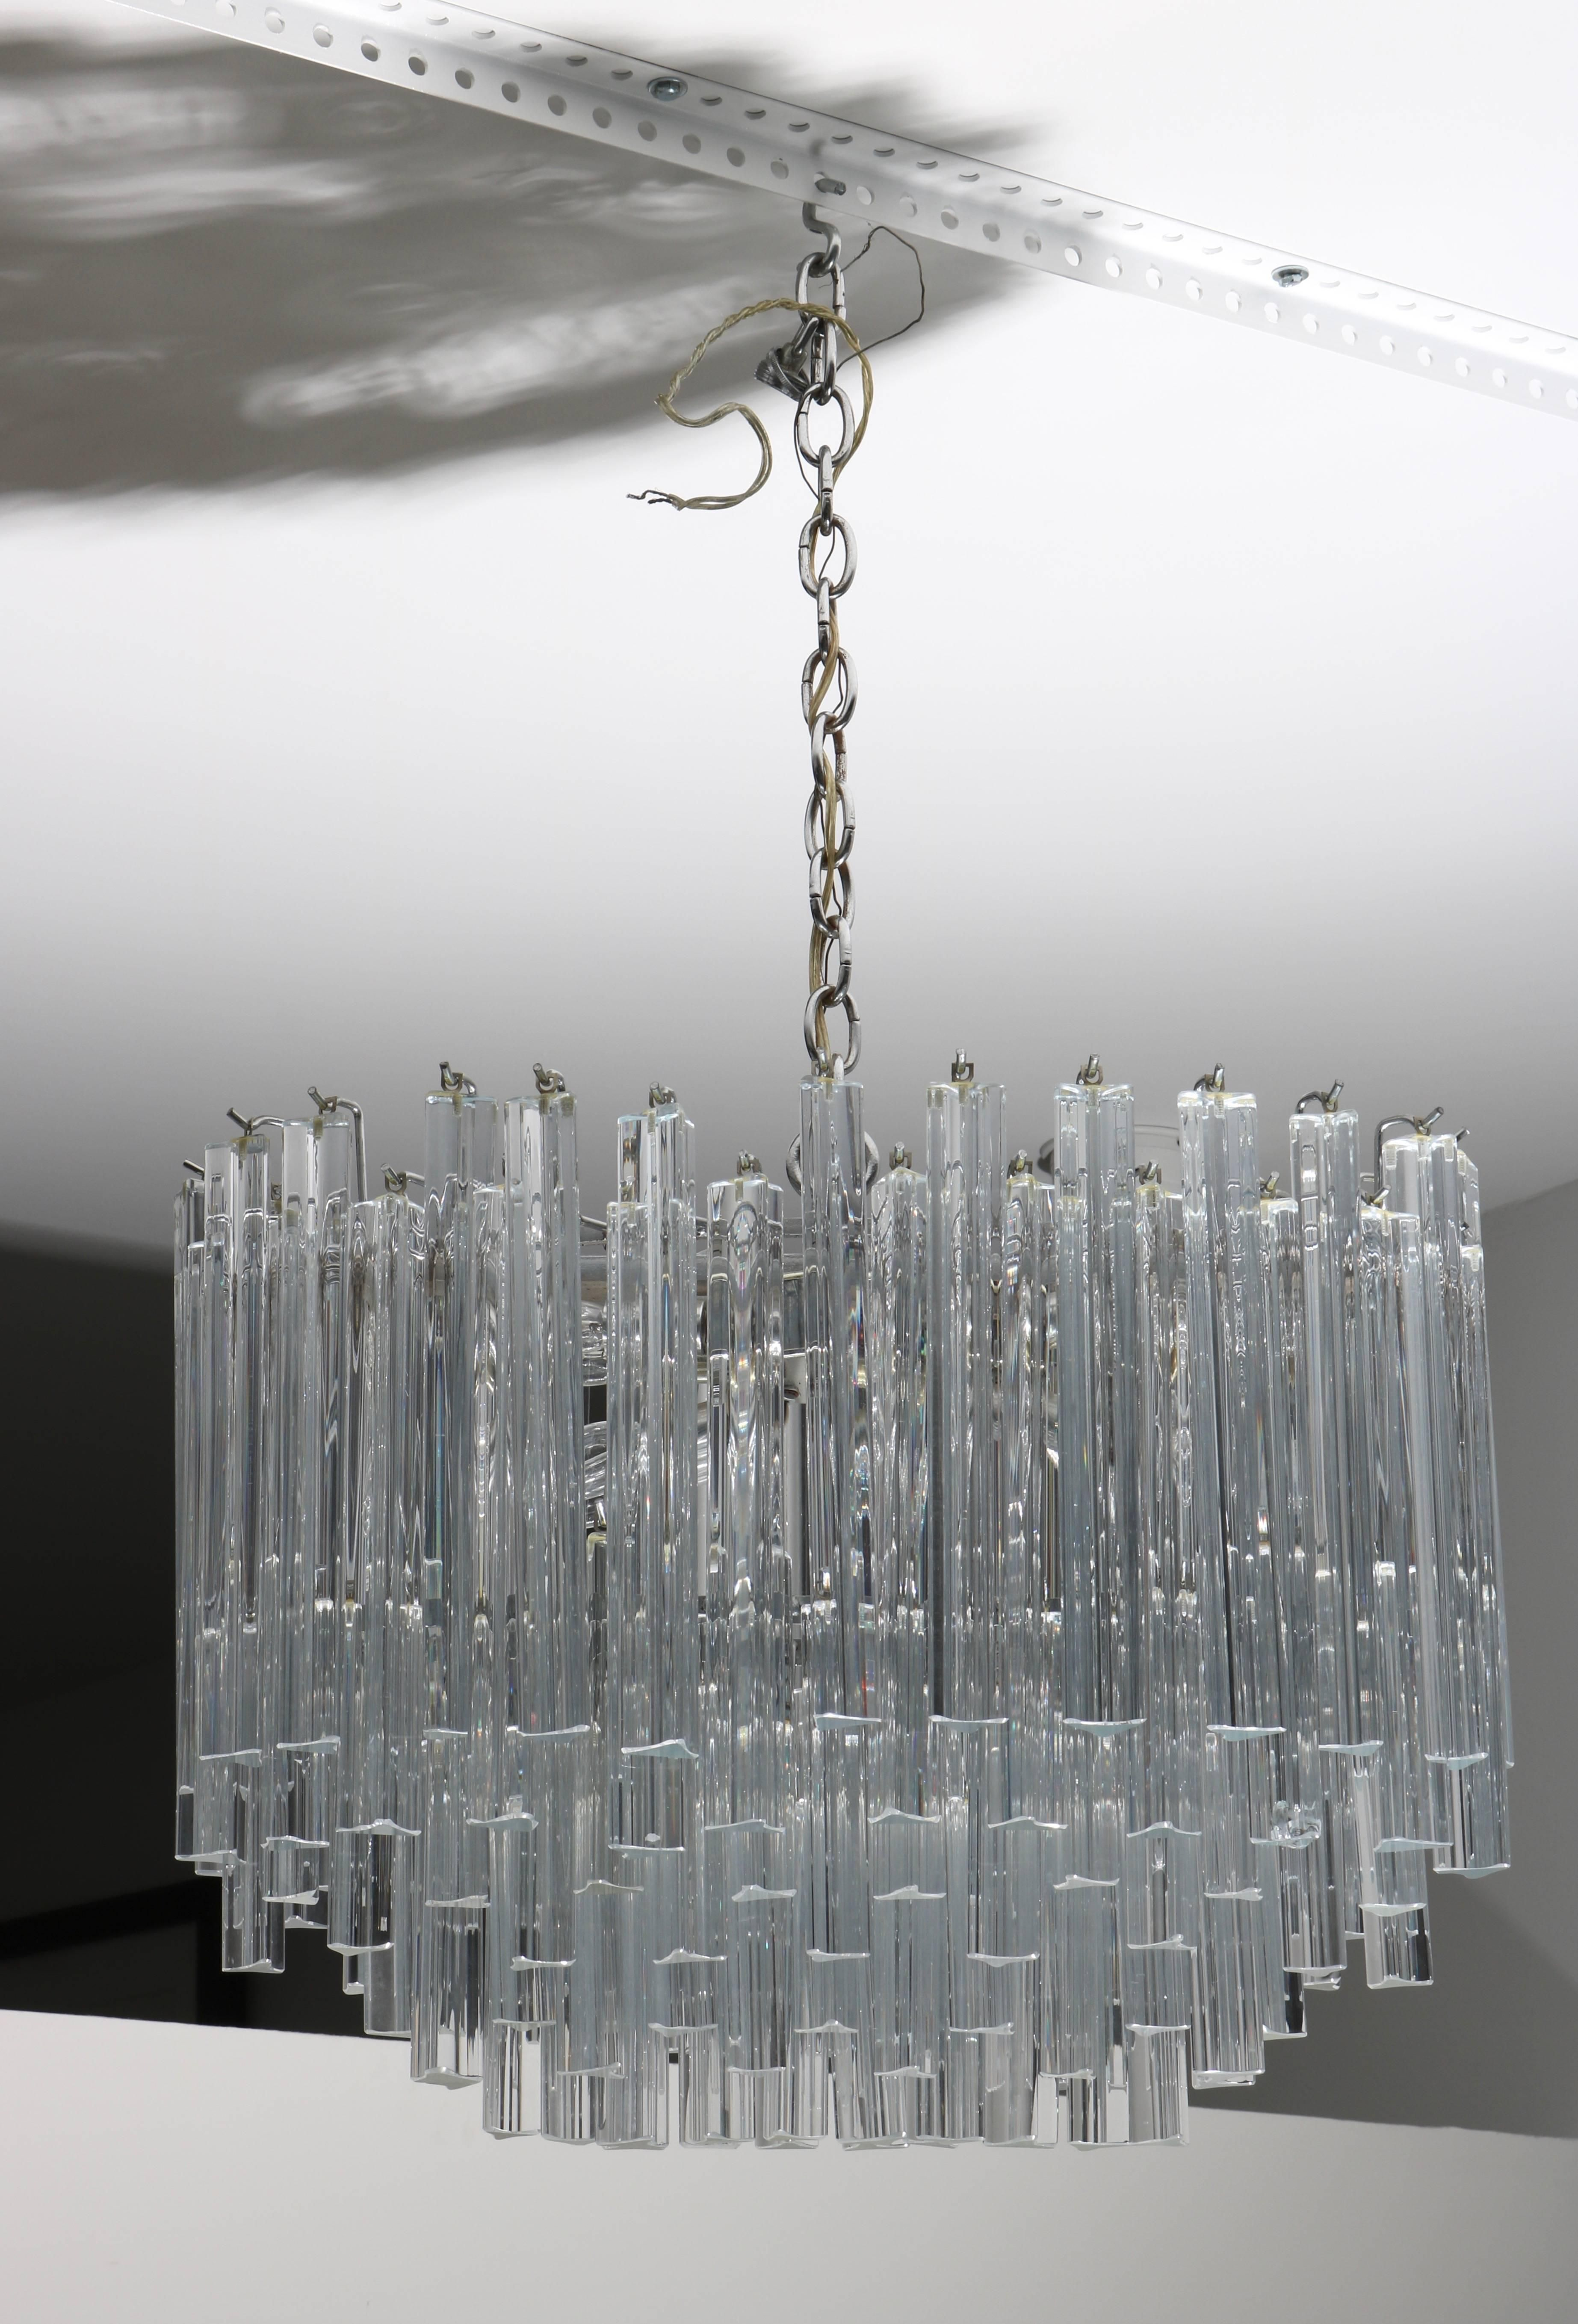 Oval Form Venini Murano Glass Chandelier With Triedri Form Prisms For Sale At 1stdibs Glass Chandelier Murano